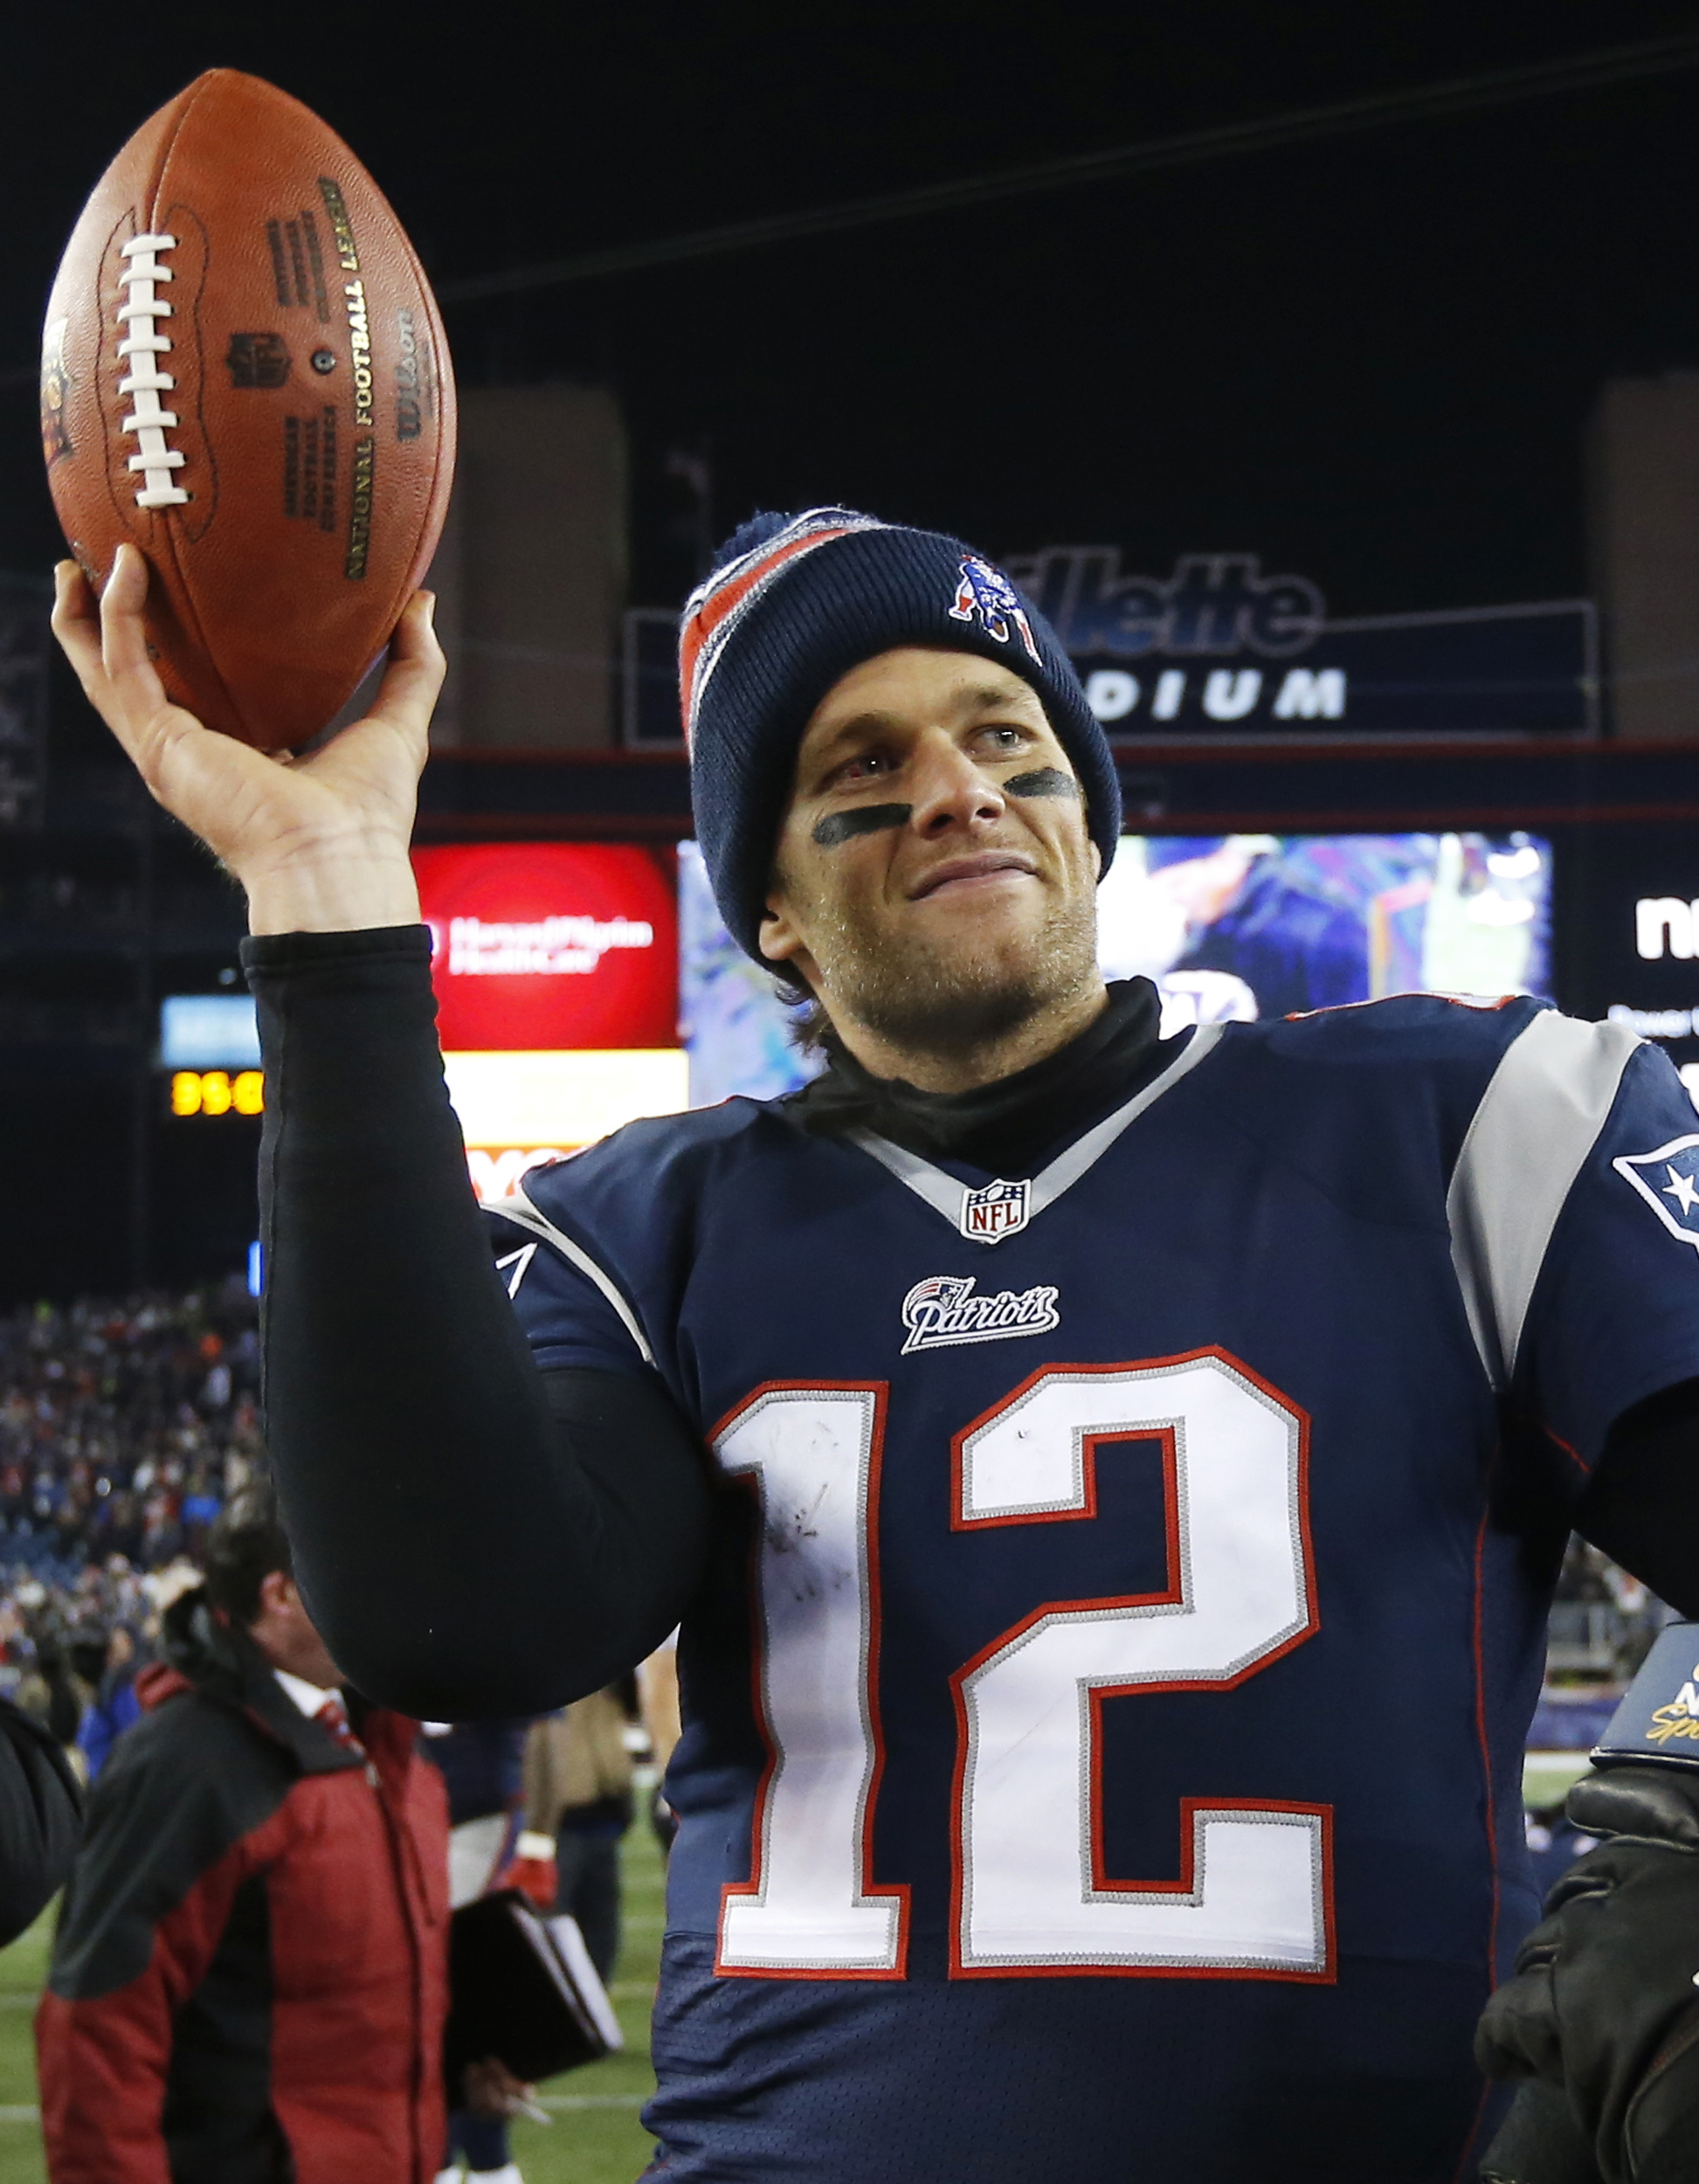 FILE - In this Jan. 10, 2015, file photo, New England Patriots quarterback Tom Brady holds up the game ball after an NFL divisional playoff football game against the Baltimore Ravens in Foxborough, Mass. With the start of the new NFL season less that a mo